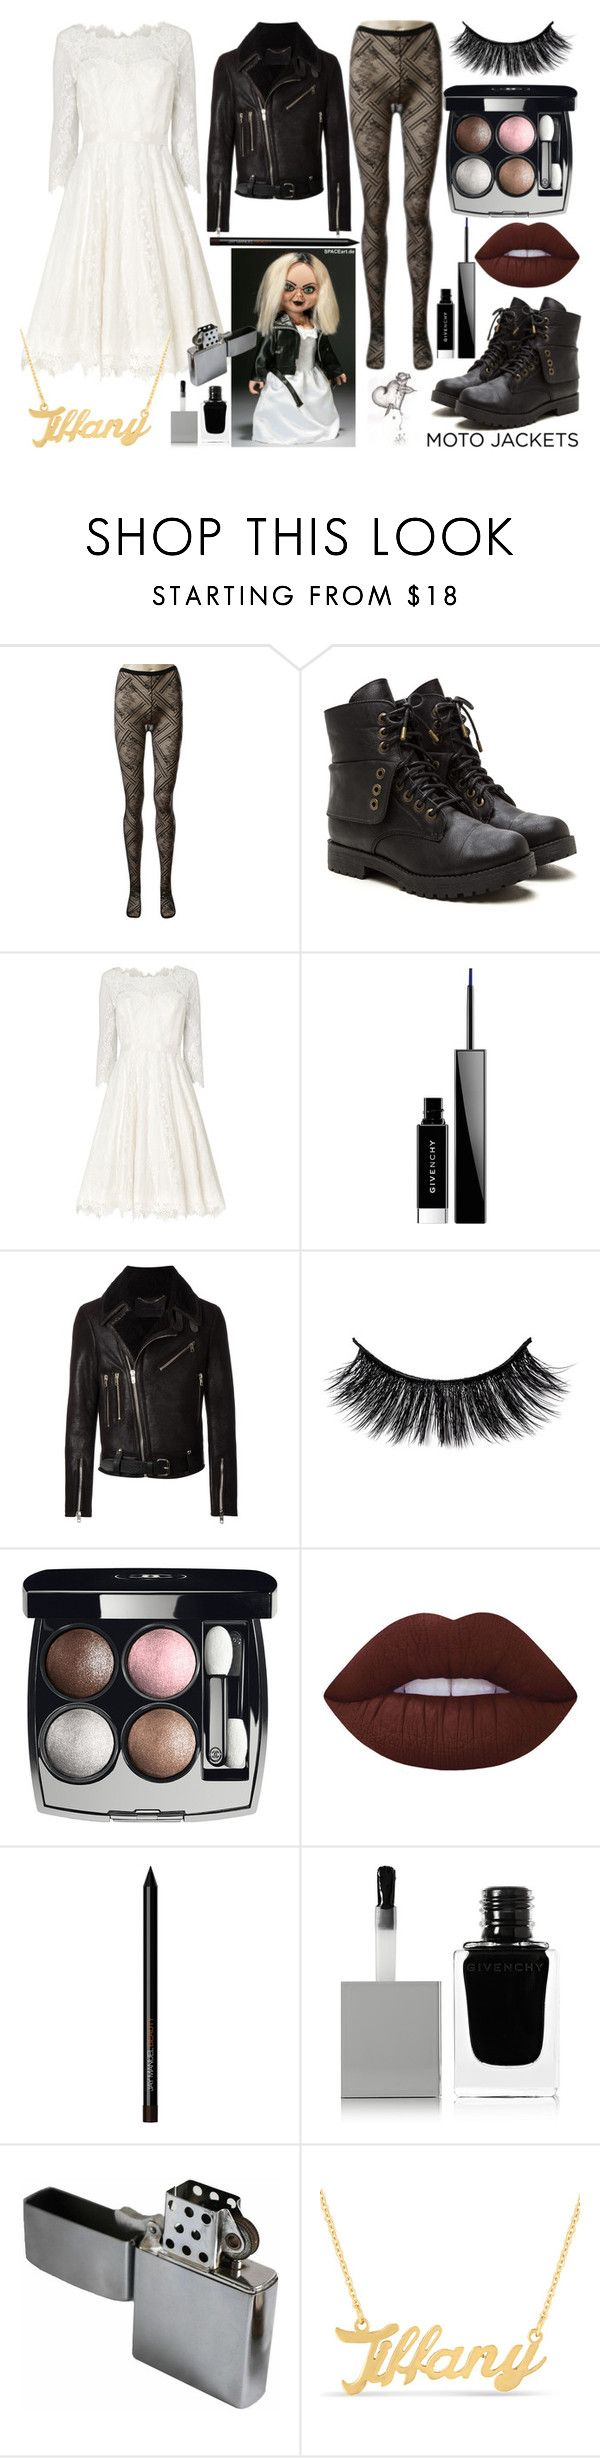 """Bride Of Chucky"" by quinn-avina ❤ liked on Polyvore featuring Chanel, Phase Eight, Givenchy, Diesel Black Gold and Lime Crime"